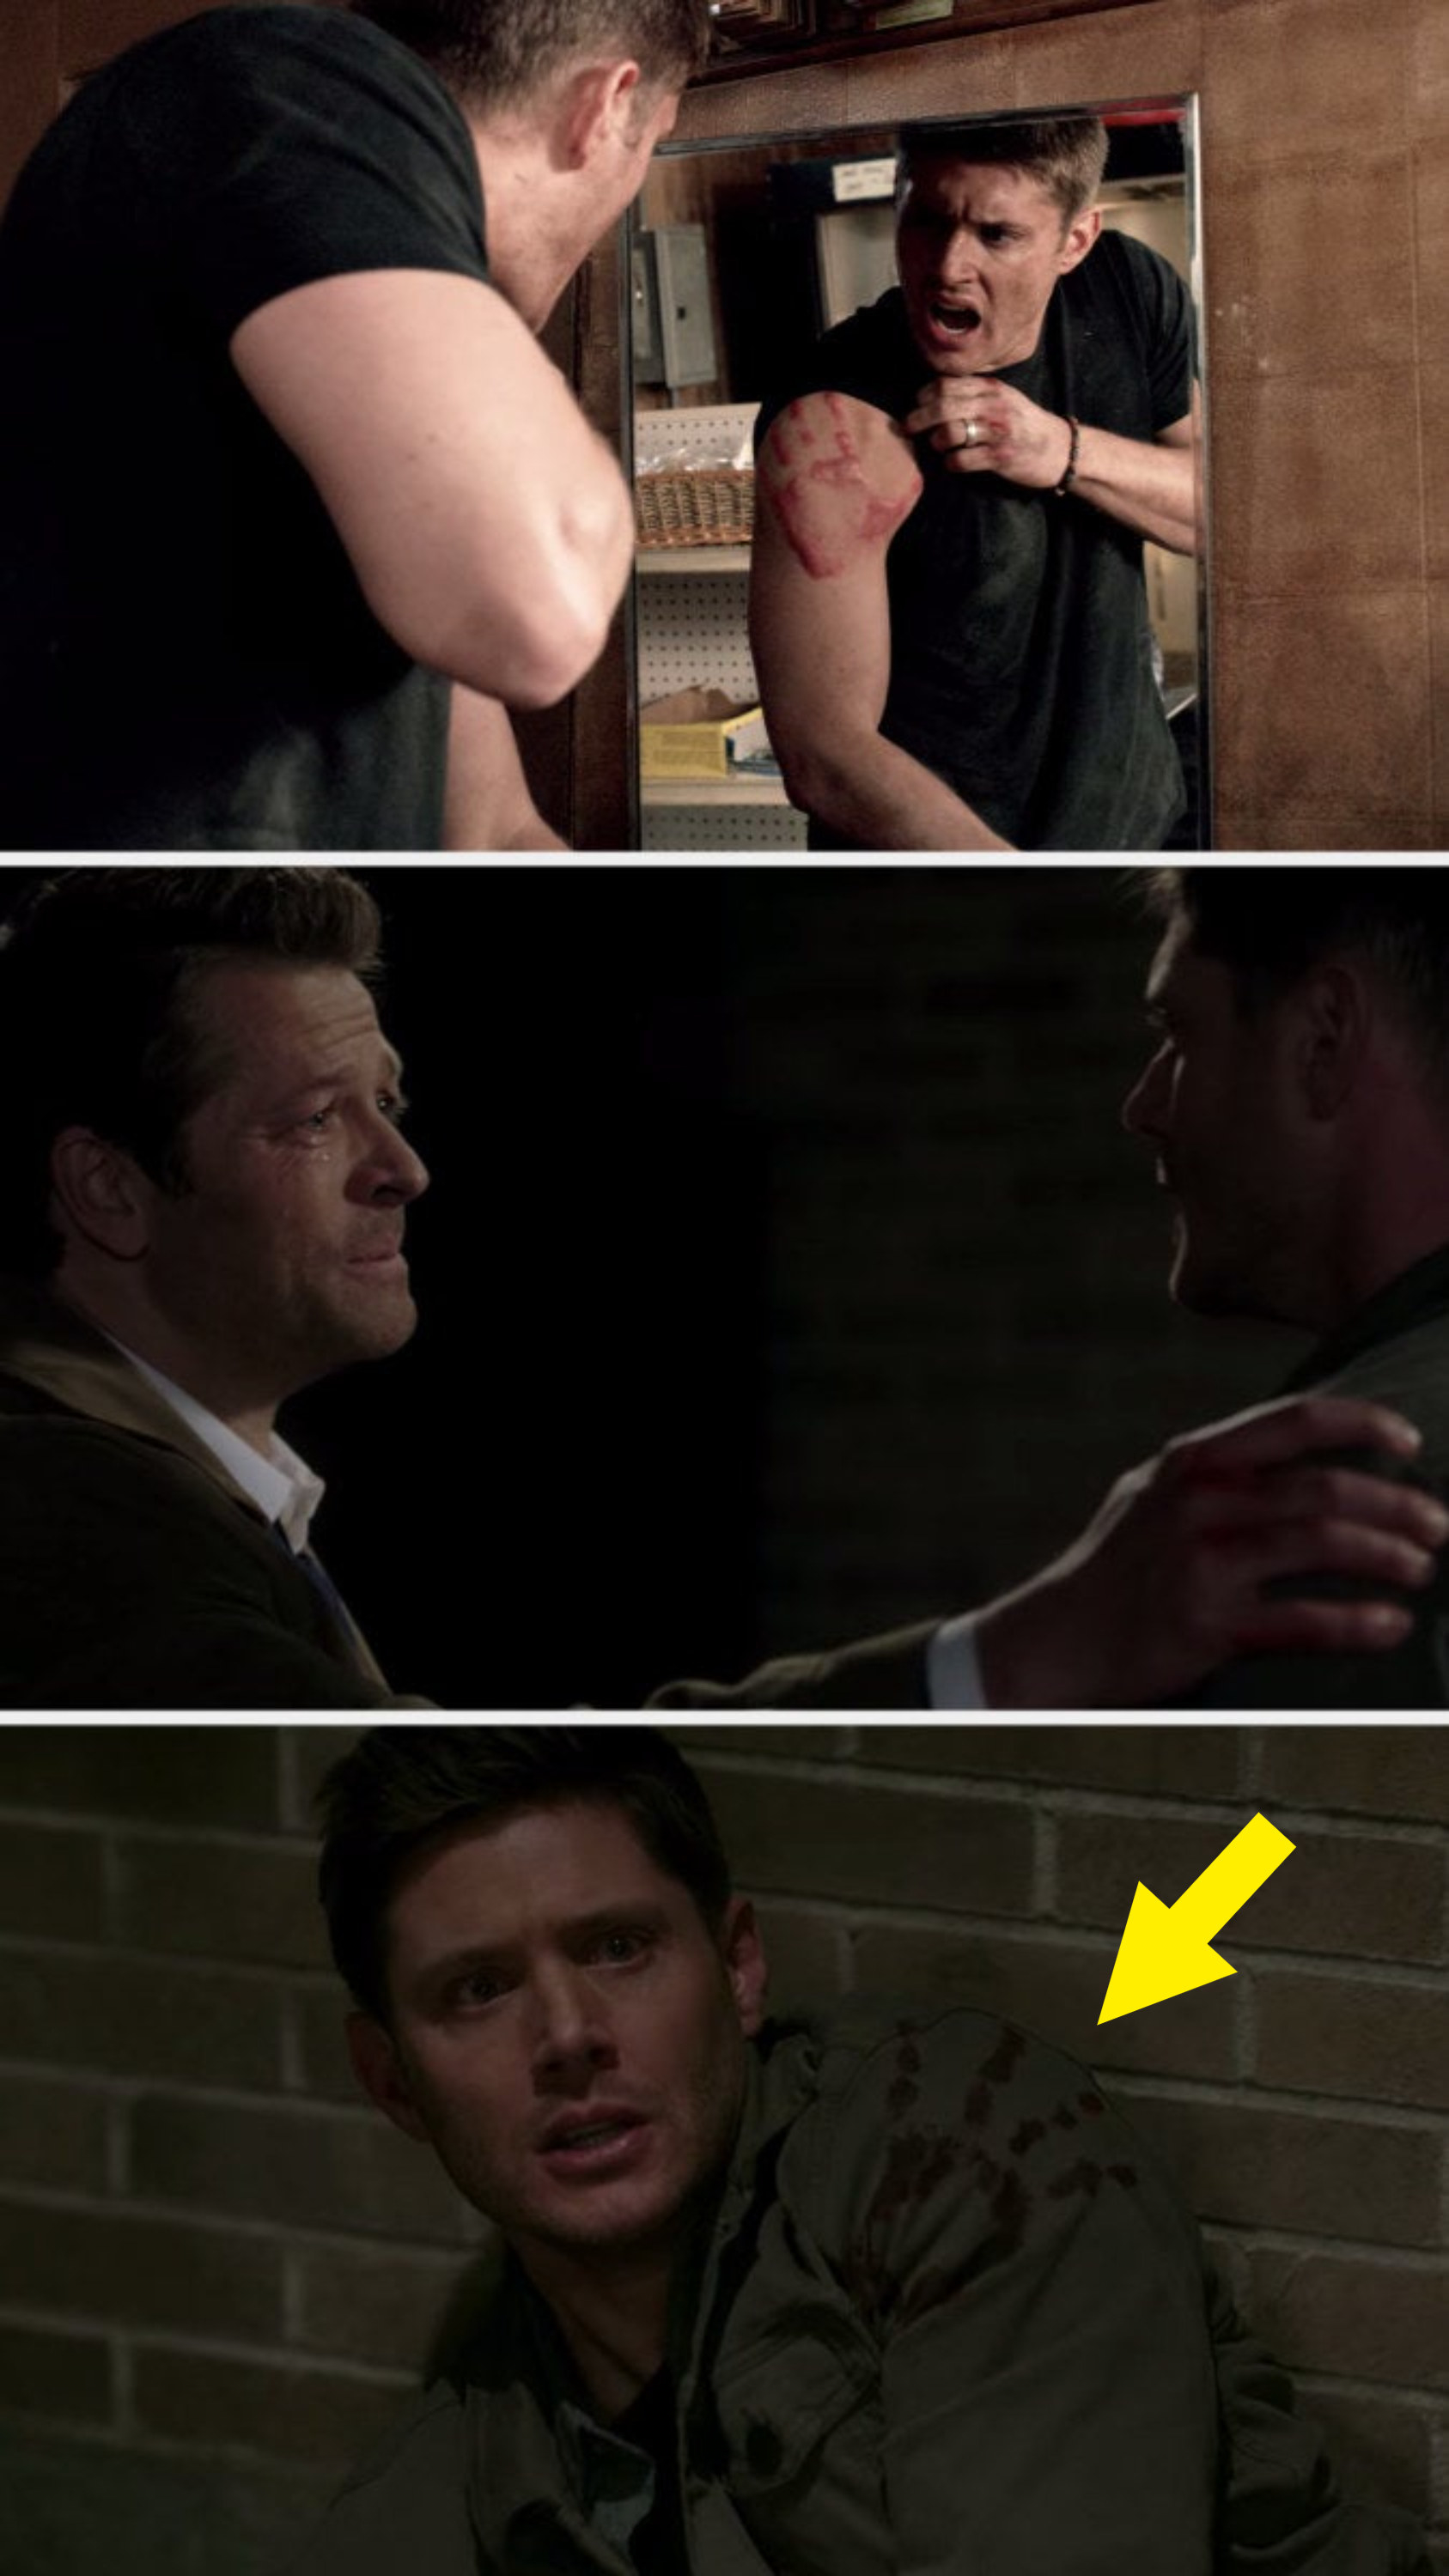 Dean has a hand print on the same shoulder twice